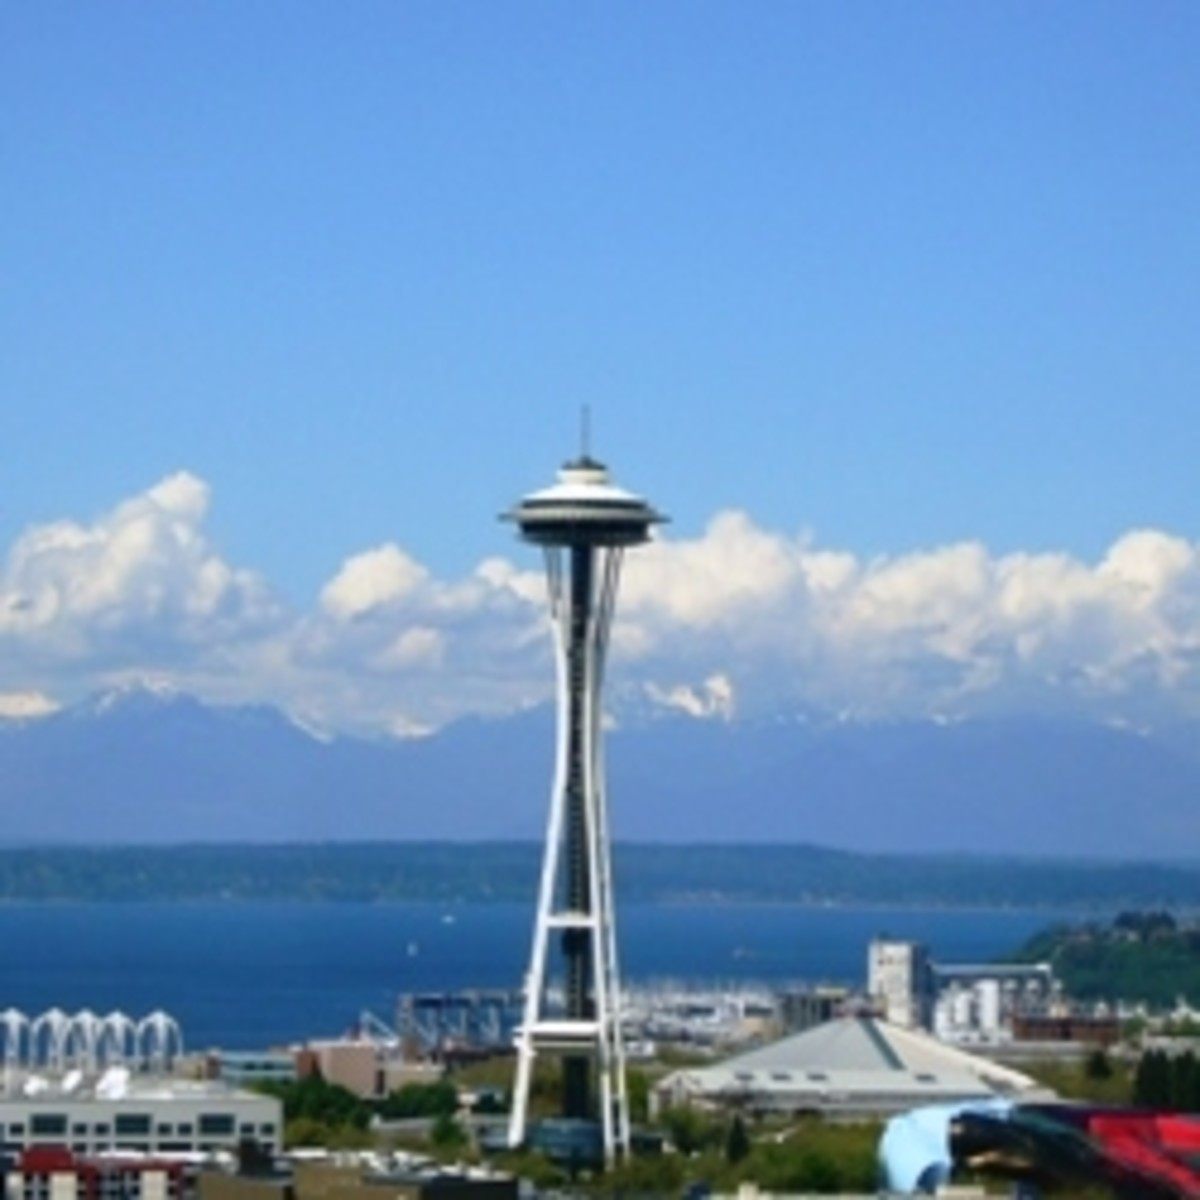 The Seattle Space Needle on a Sunny Day